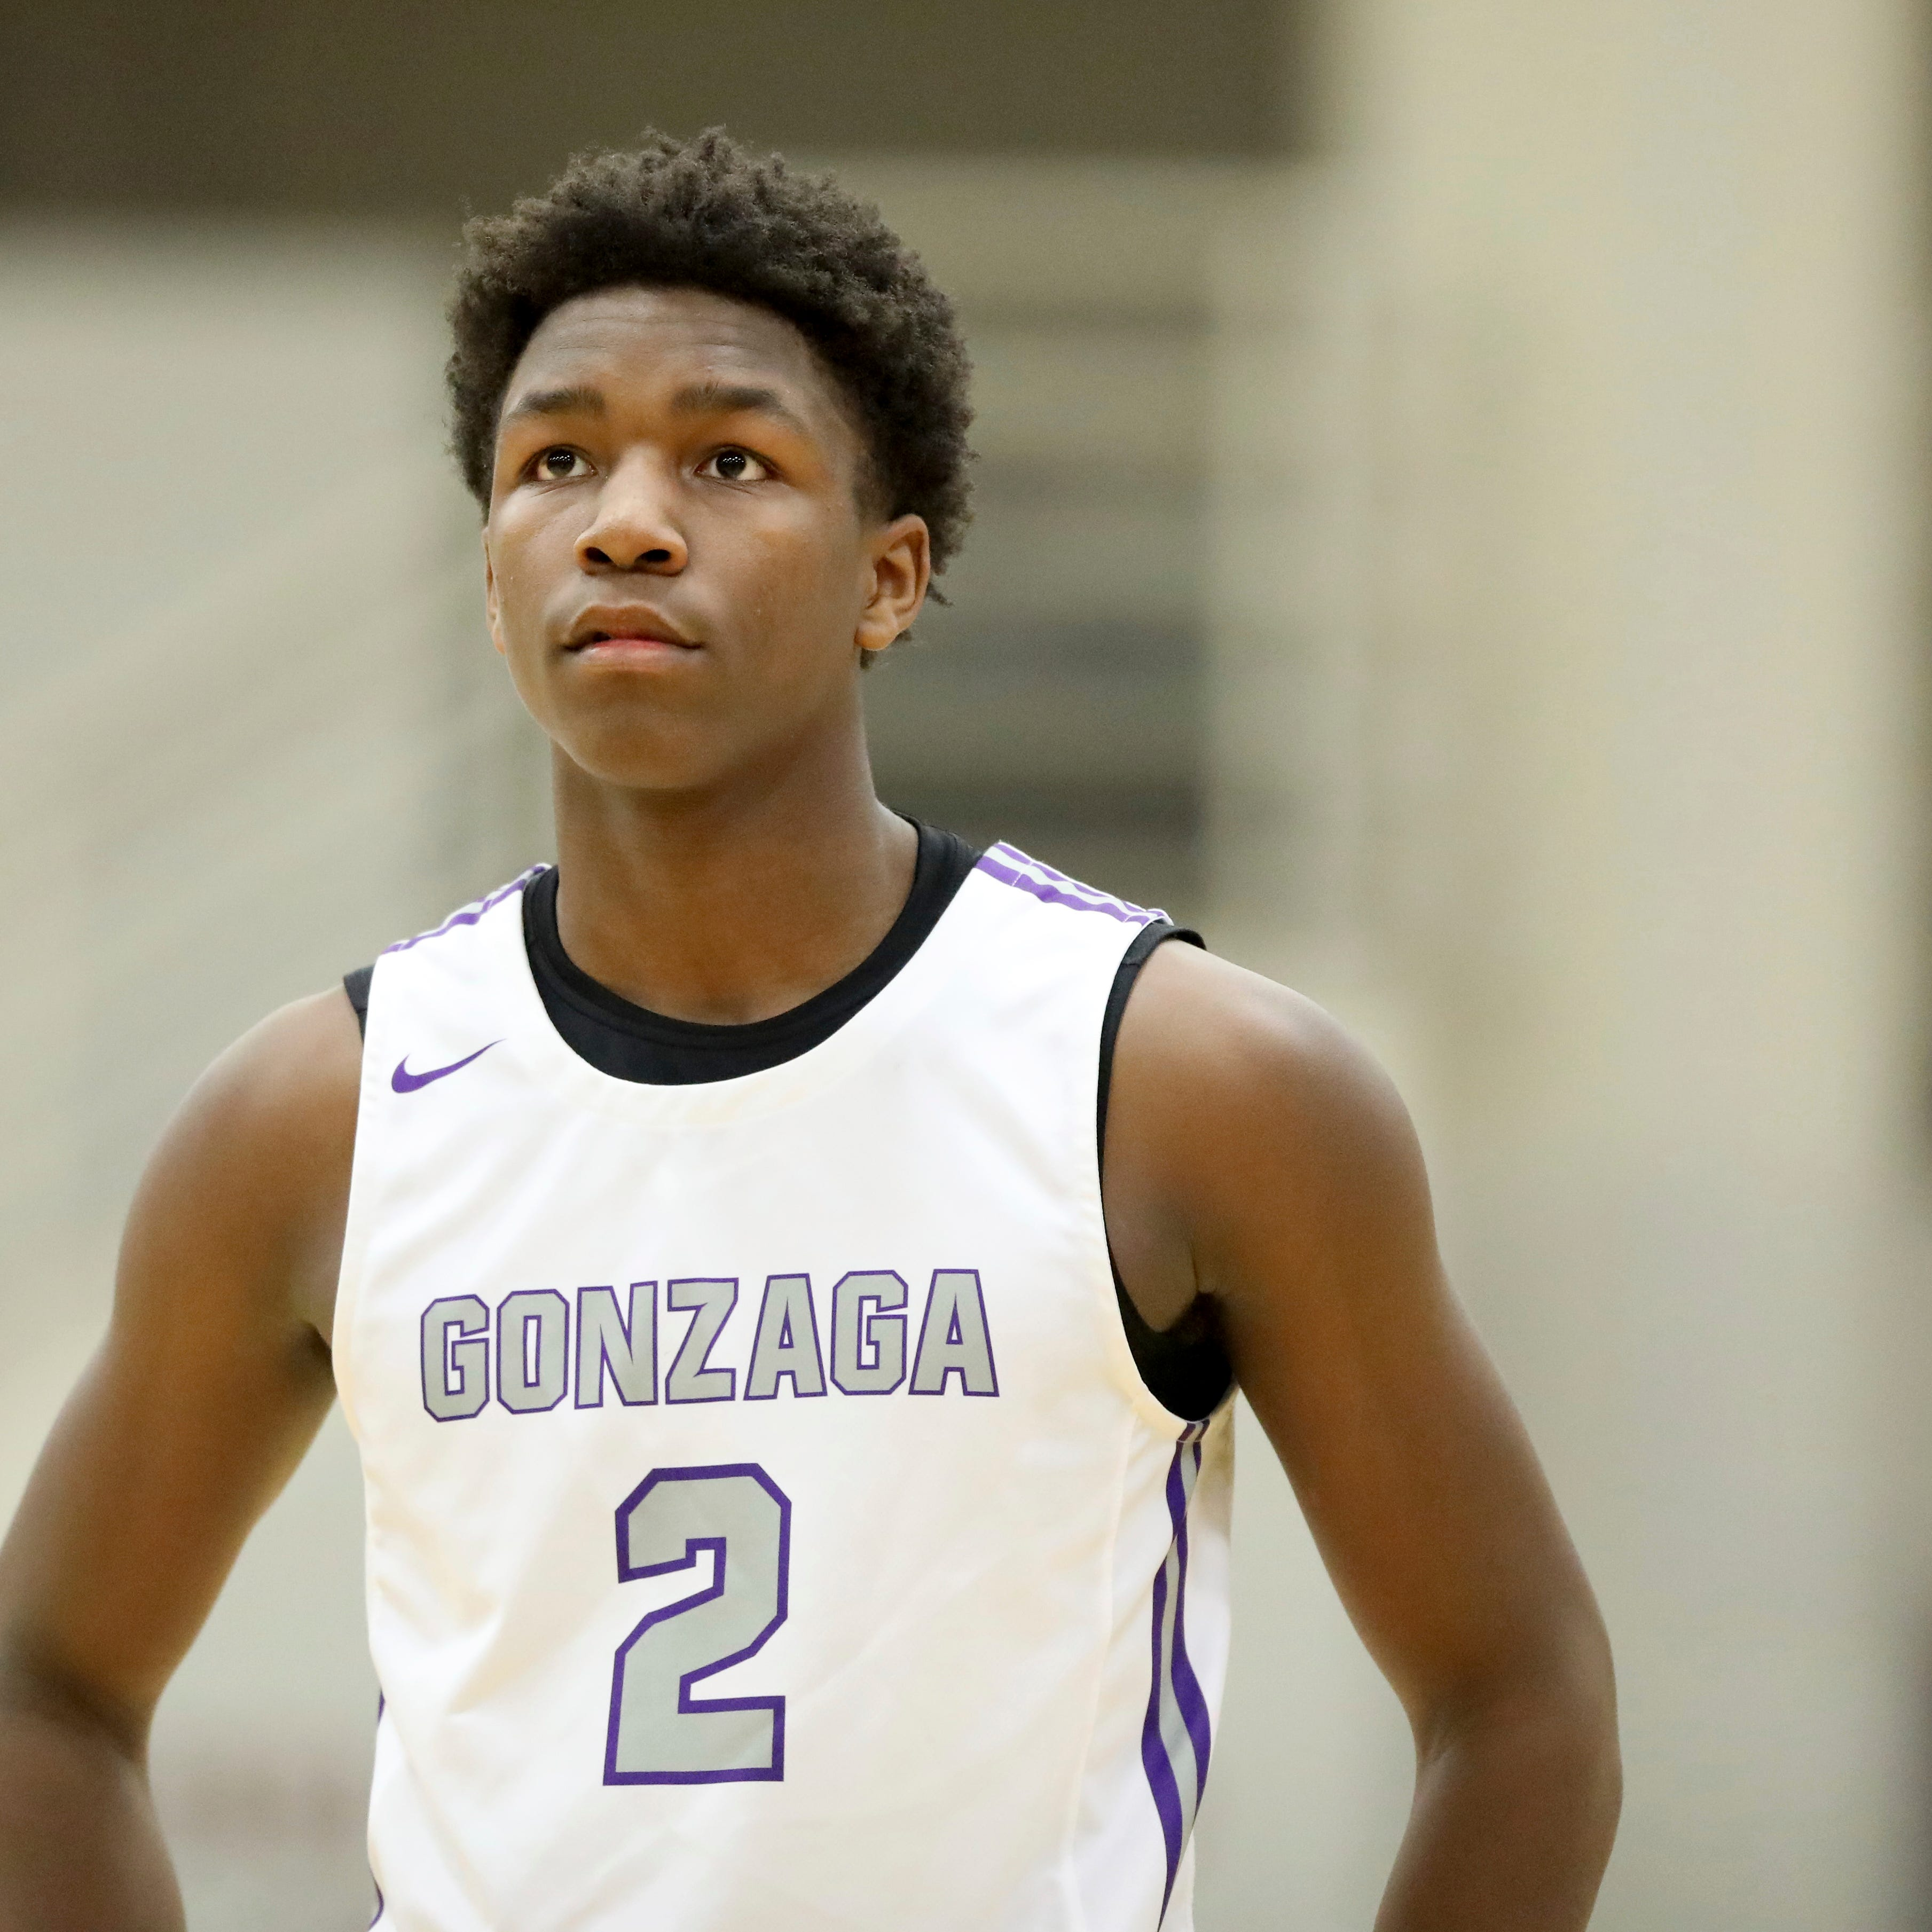 4-star point guard Chuck Harris becomes Butler basketball's first 2020 commit